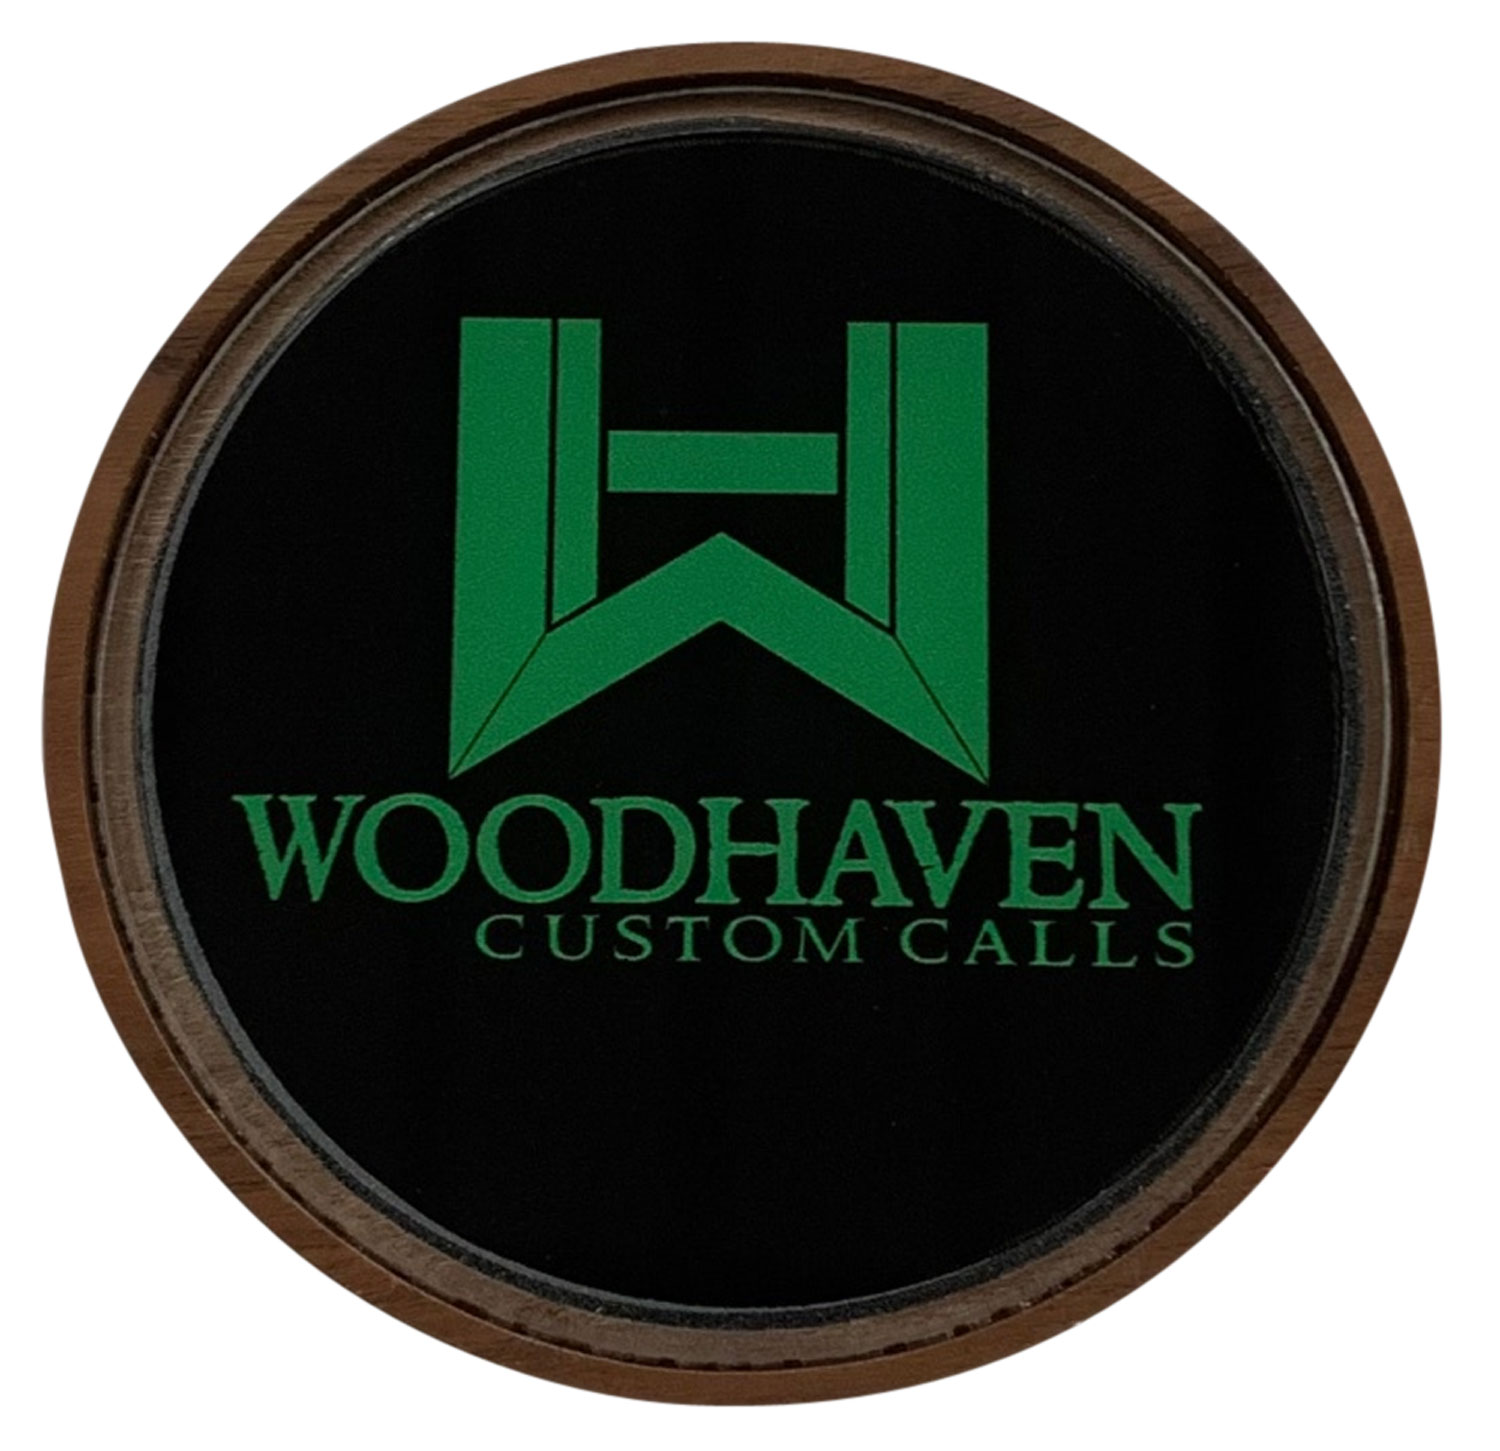 WOODHAVEN WH025 LEGEND GLASS